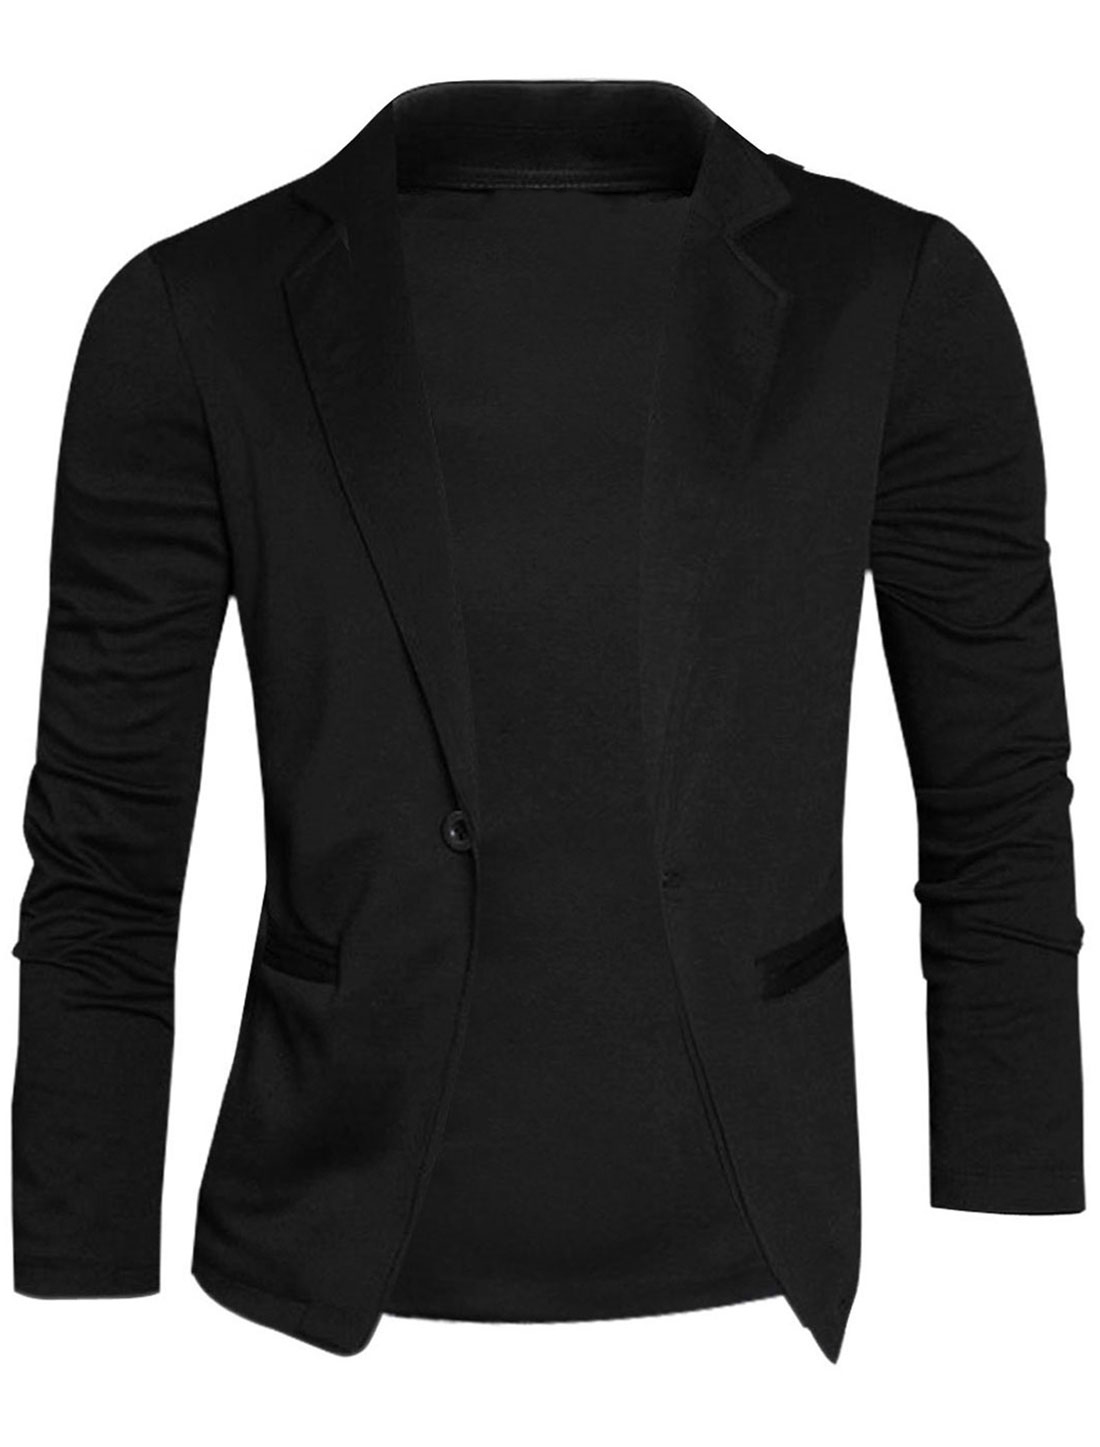 Man Notched Lapel Long Sleeve Fashion Blazer Black L